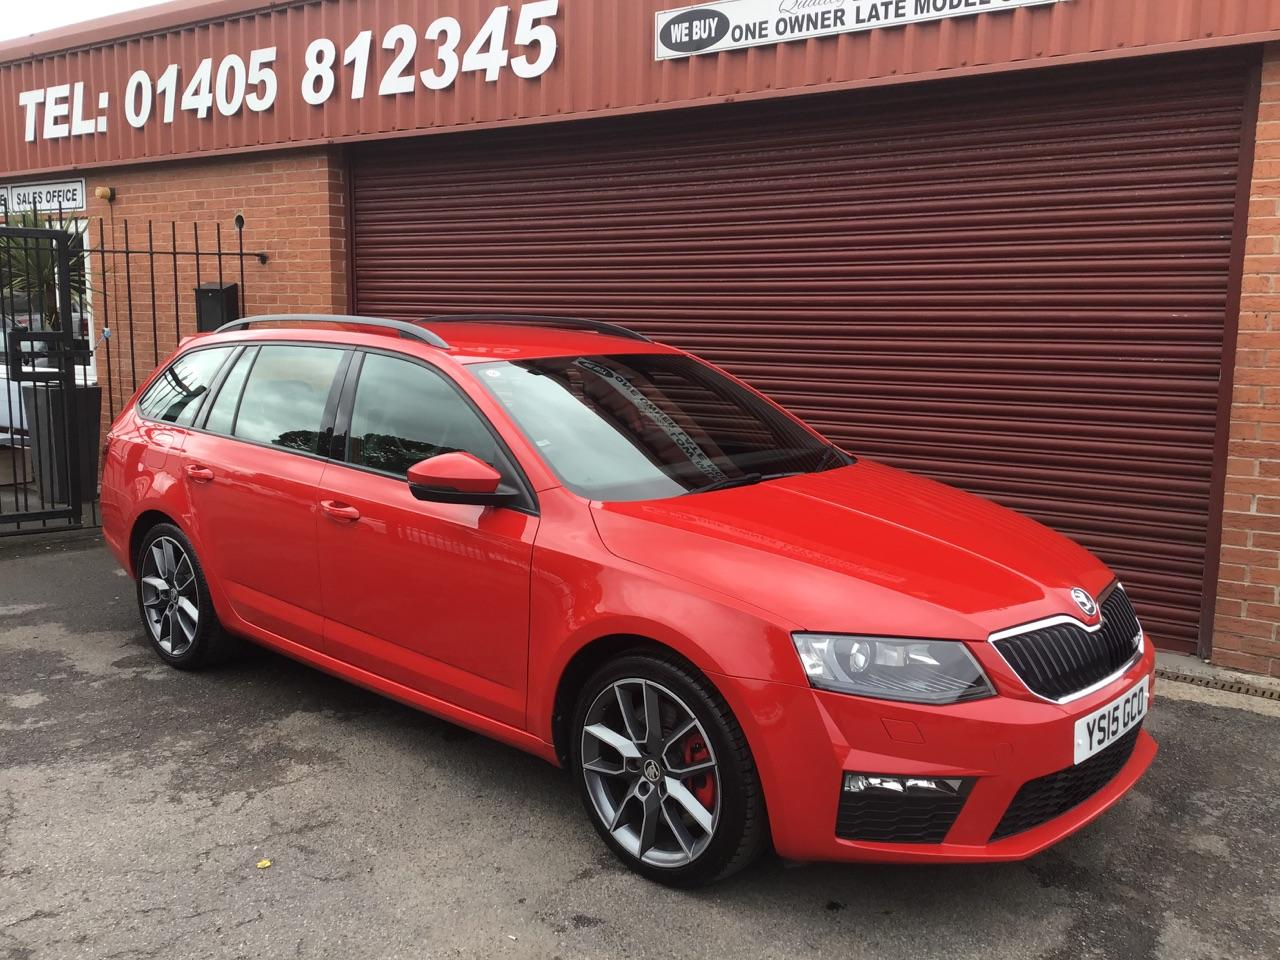 Skoda Octavia 2.0 TDI CR VRS 5dr ESTATE ** LOW LOW MILES AT ONLY 16K ** Estate Diesel Red